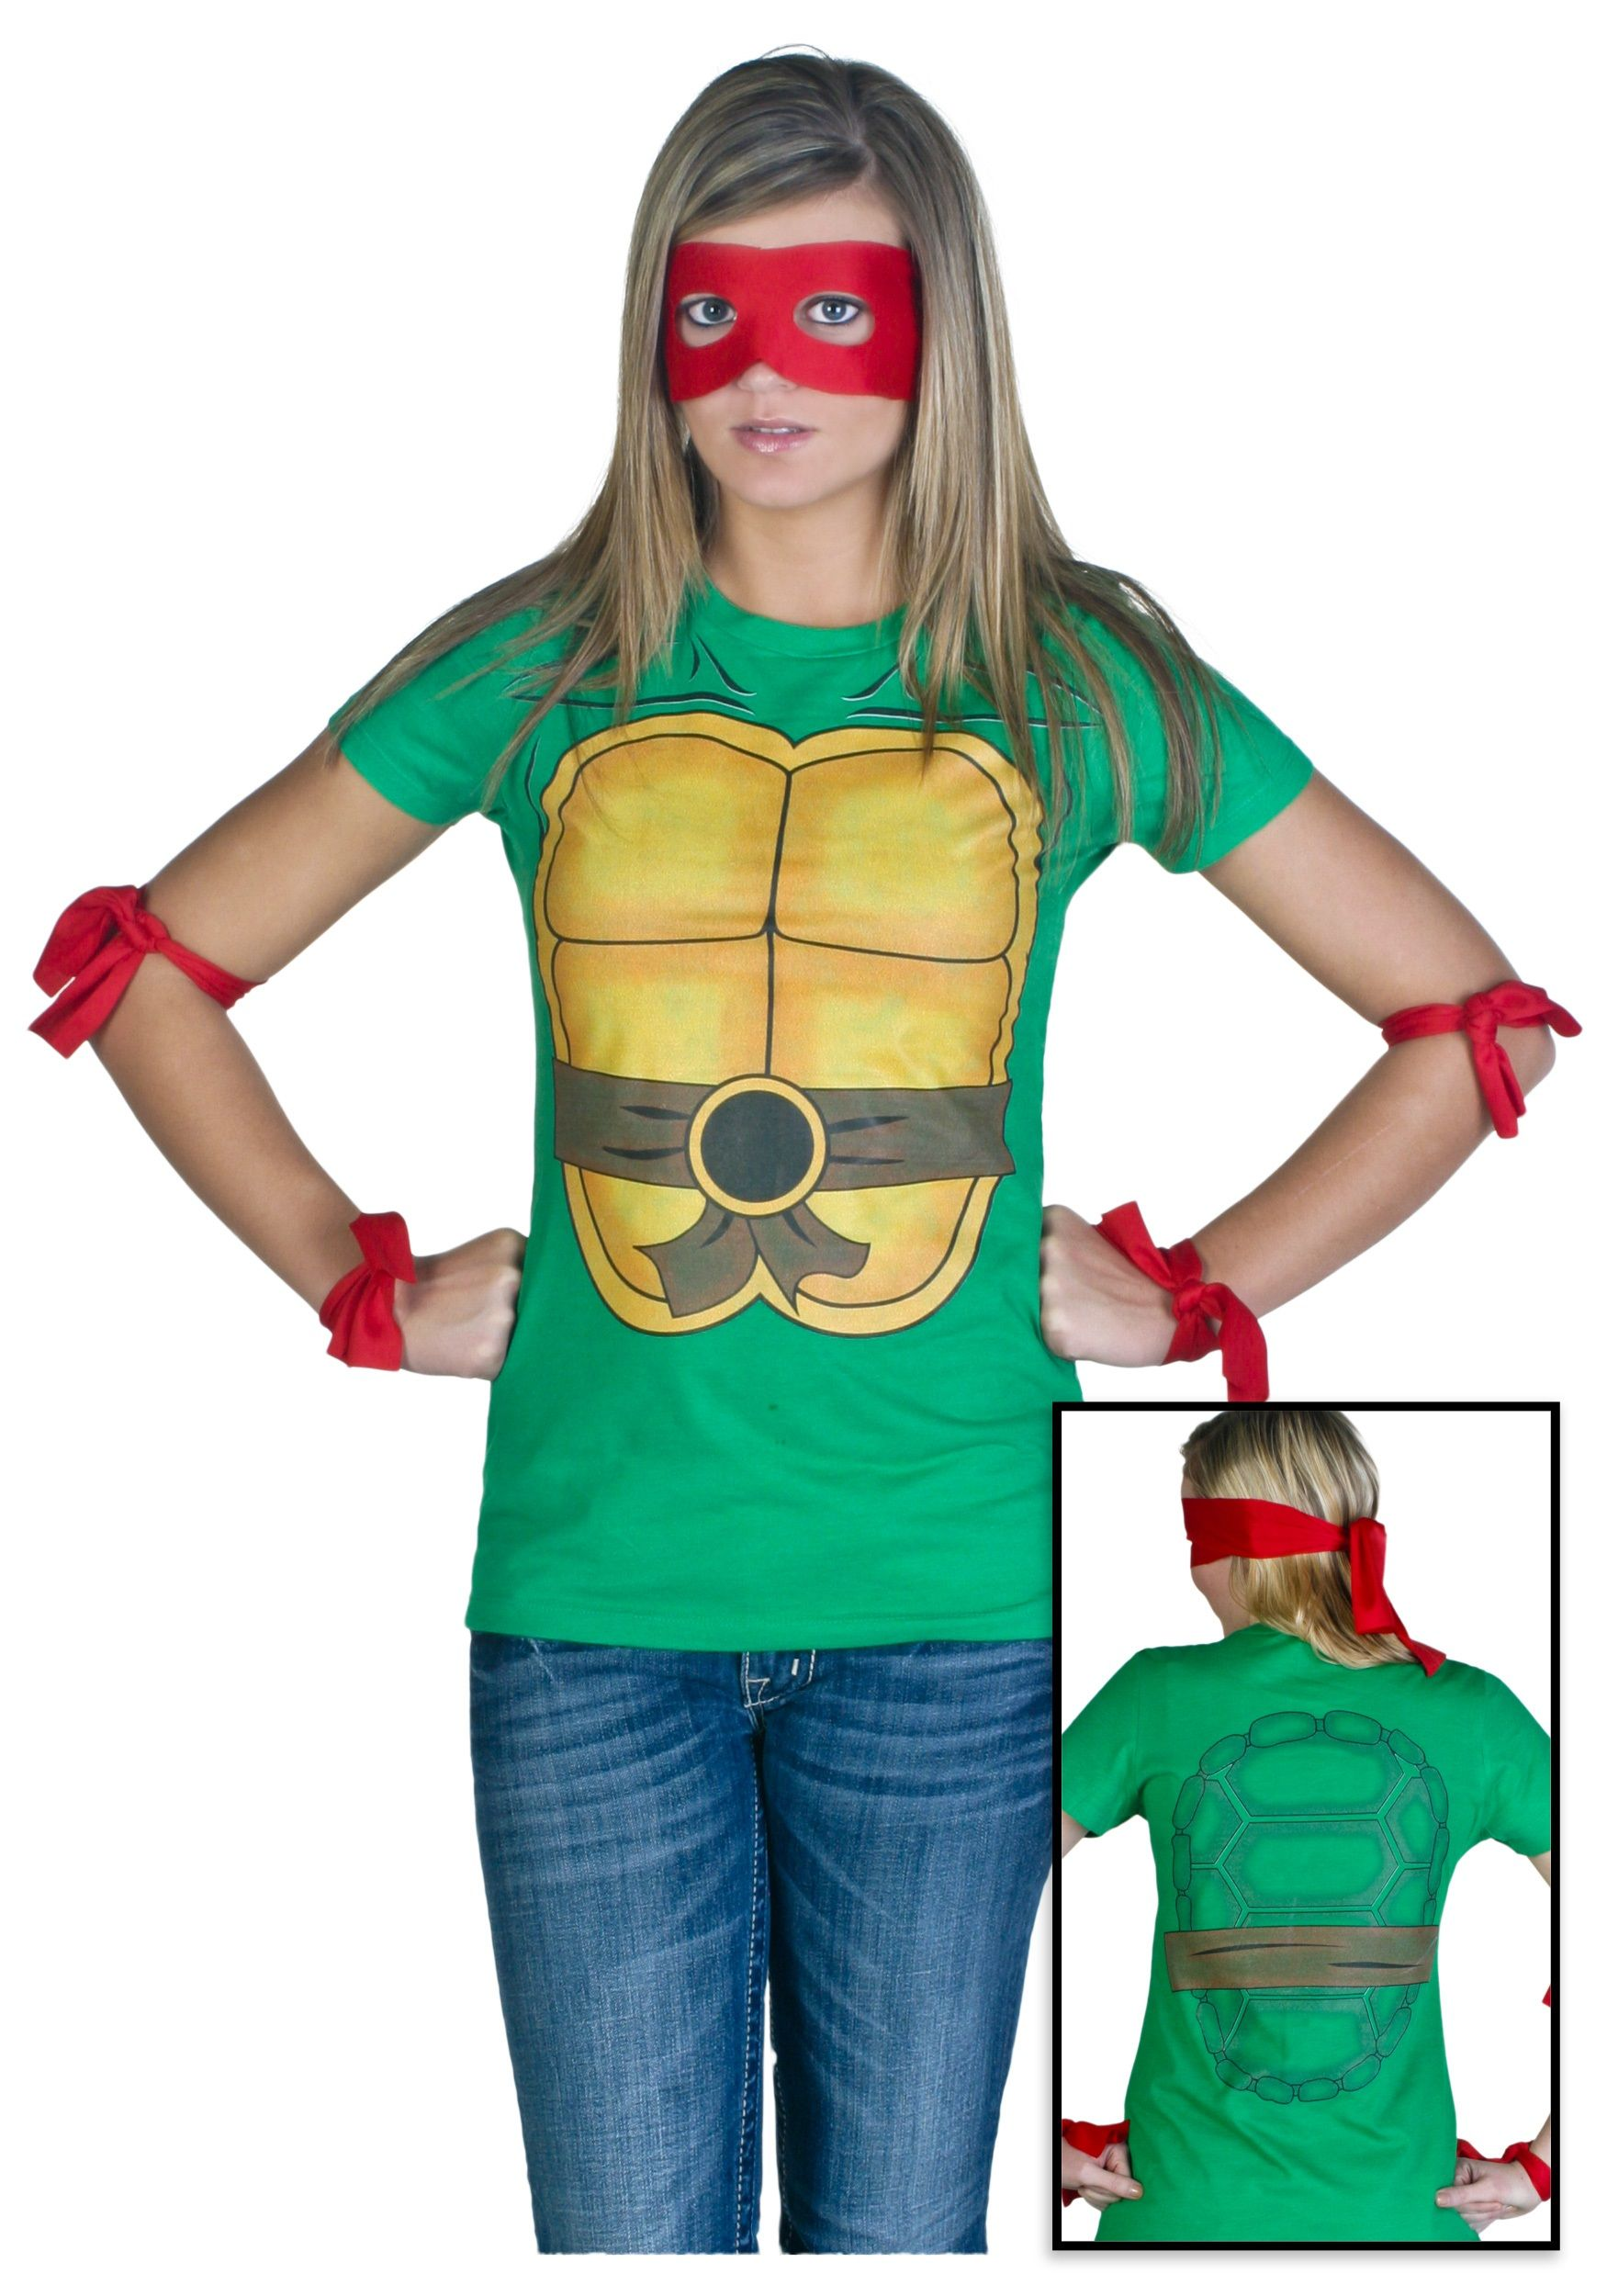 b90df85a5 ninja turtle costumes for women | Womens Ninja Turtle T-Shirt – Easy Ninja  Turtles Costumes